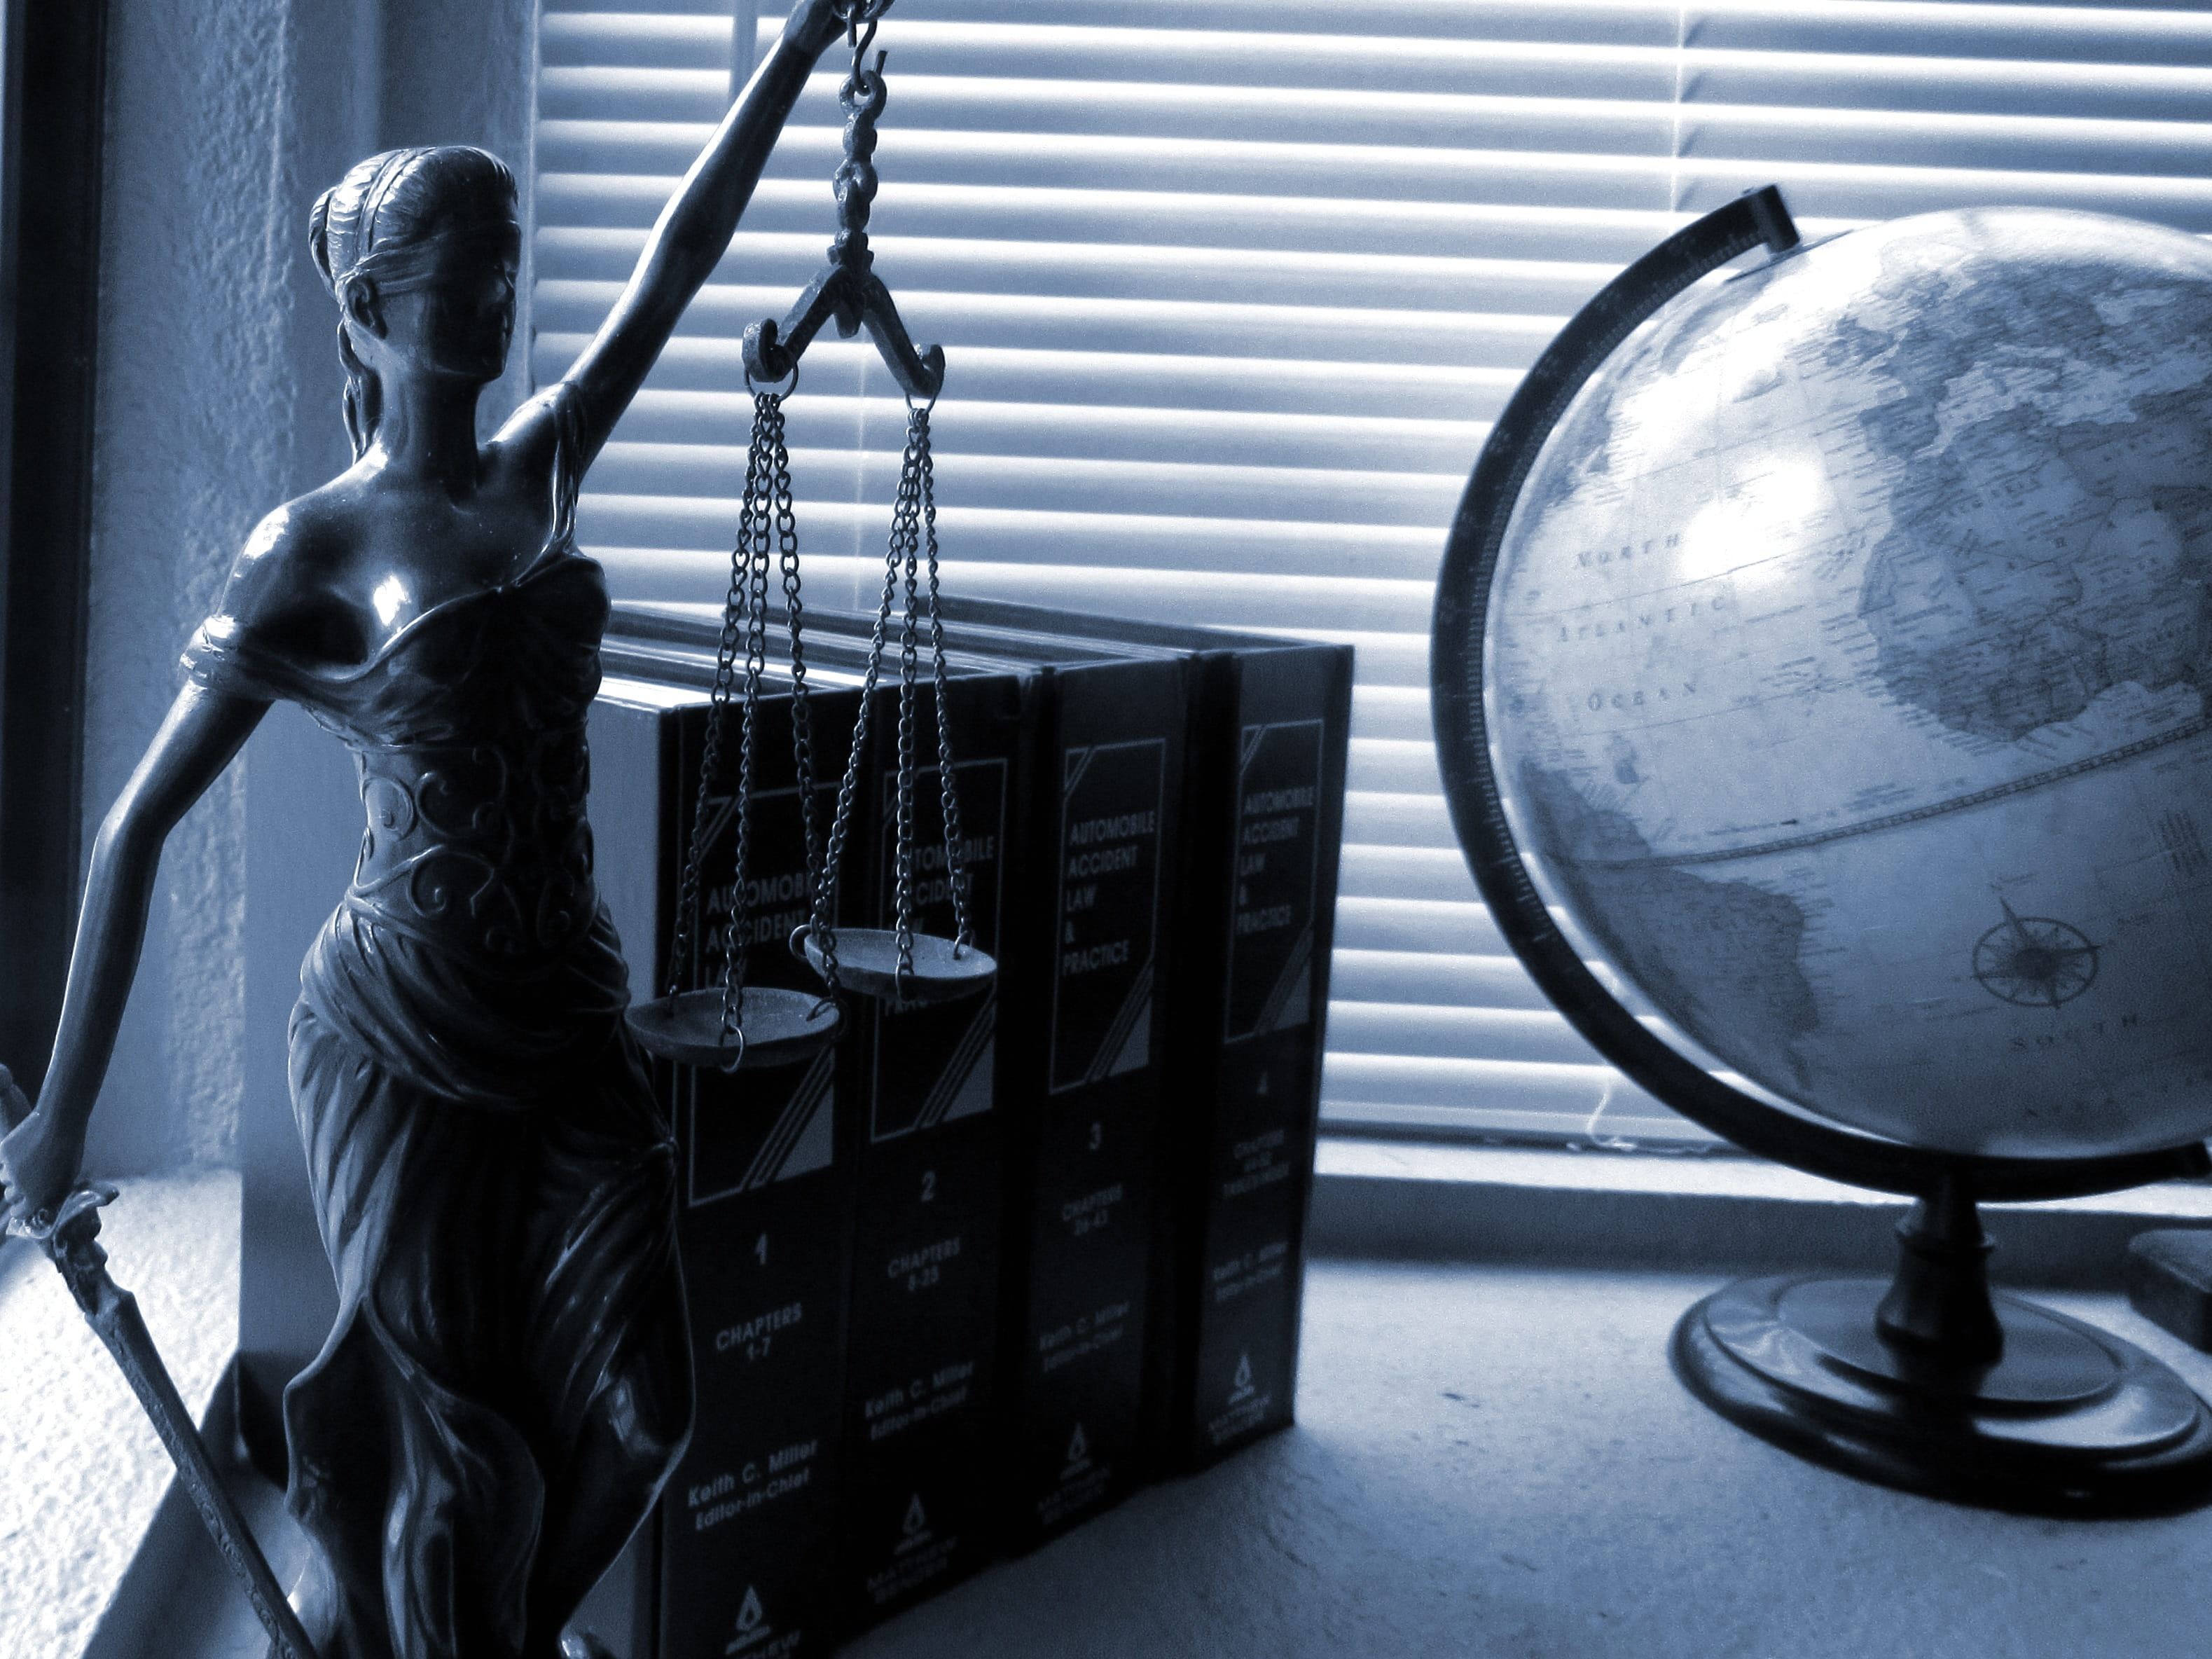 A greyscale photo featuring a model of the scales of justice next to a globe